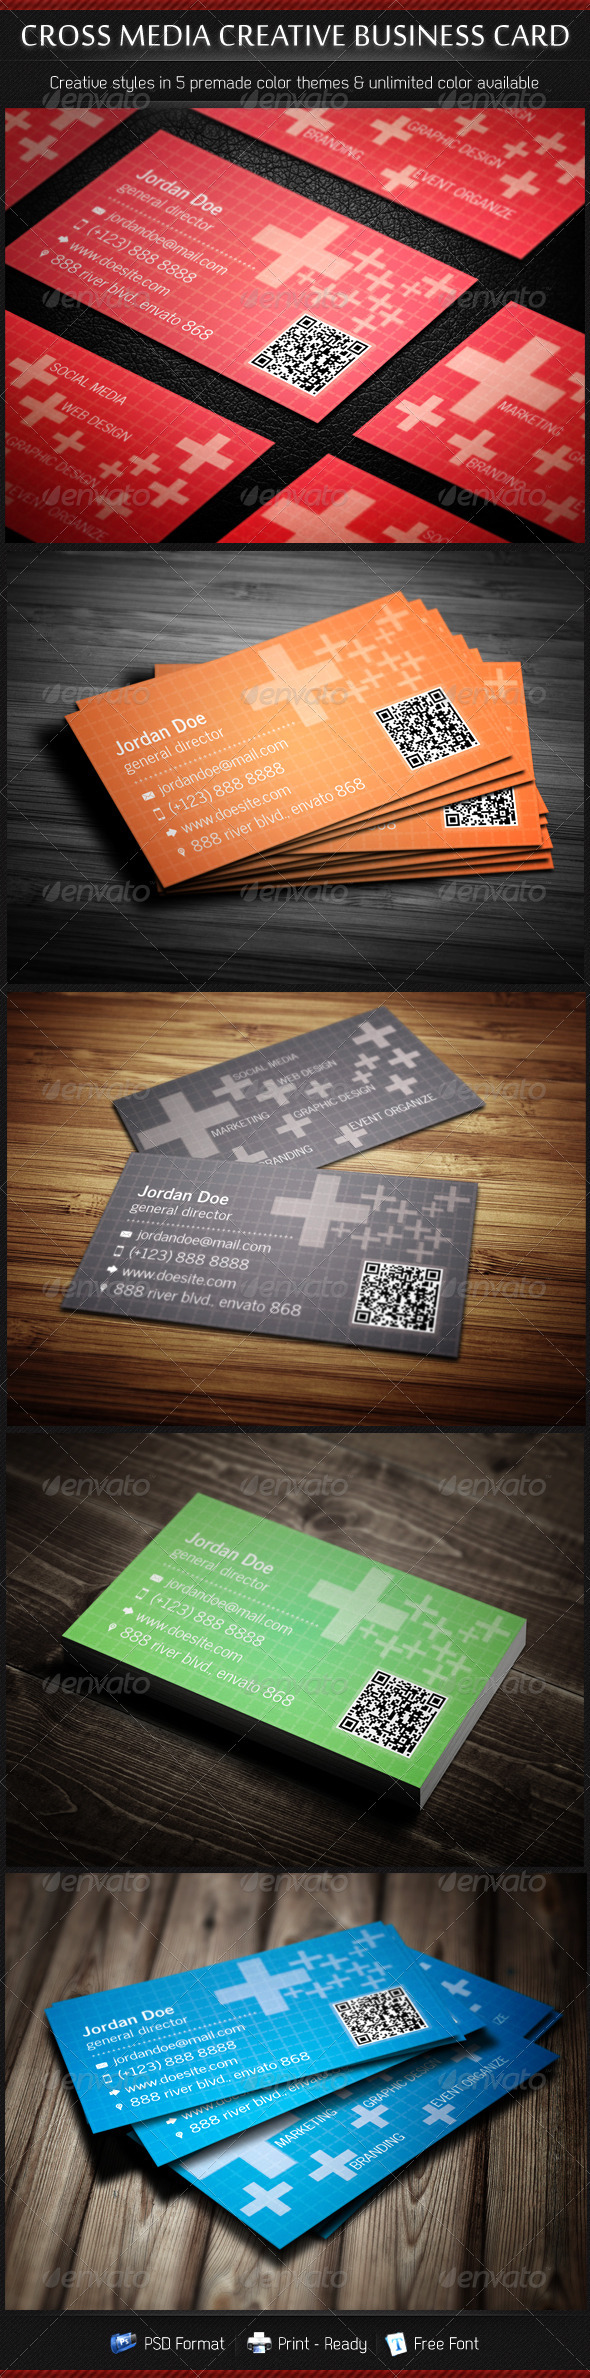 GraphicRiver Cross Media Creative Business Cards 5 in 1 3358443